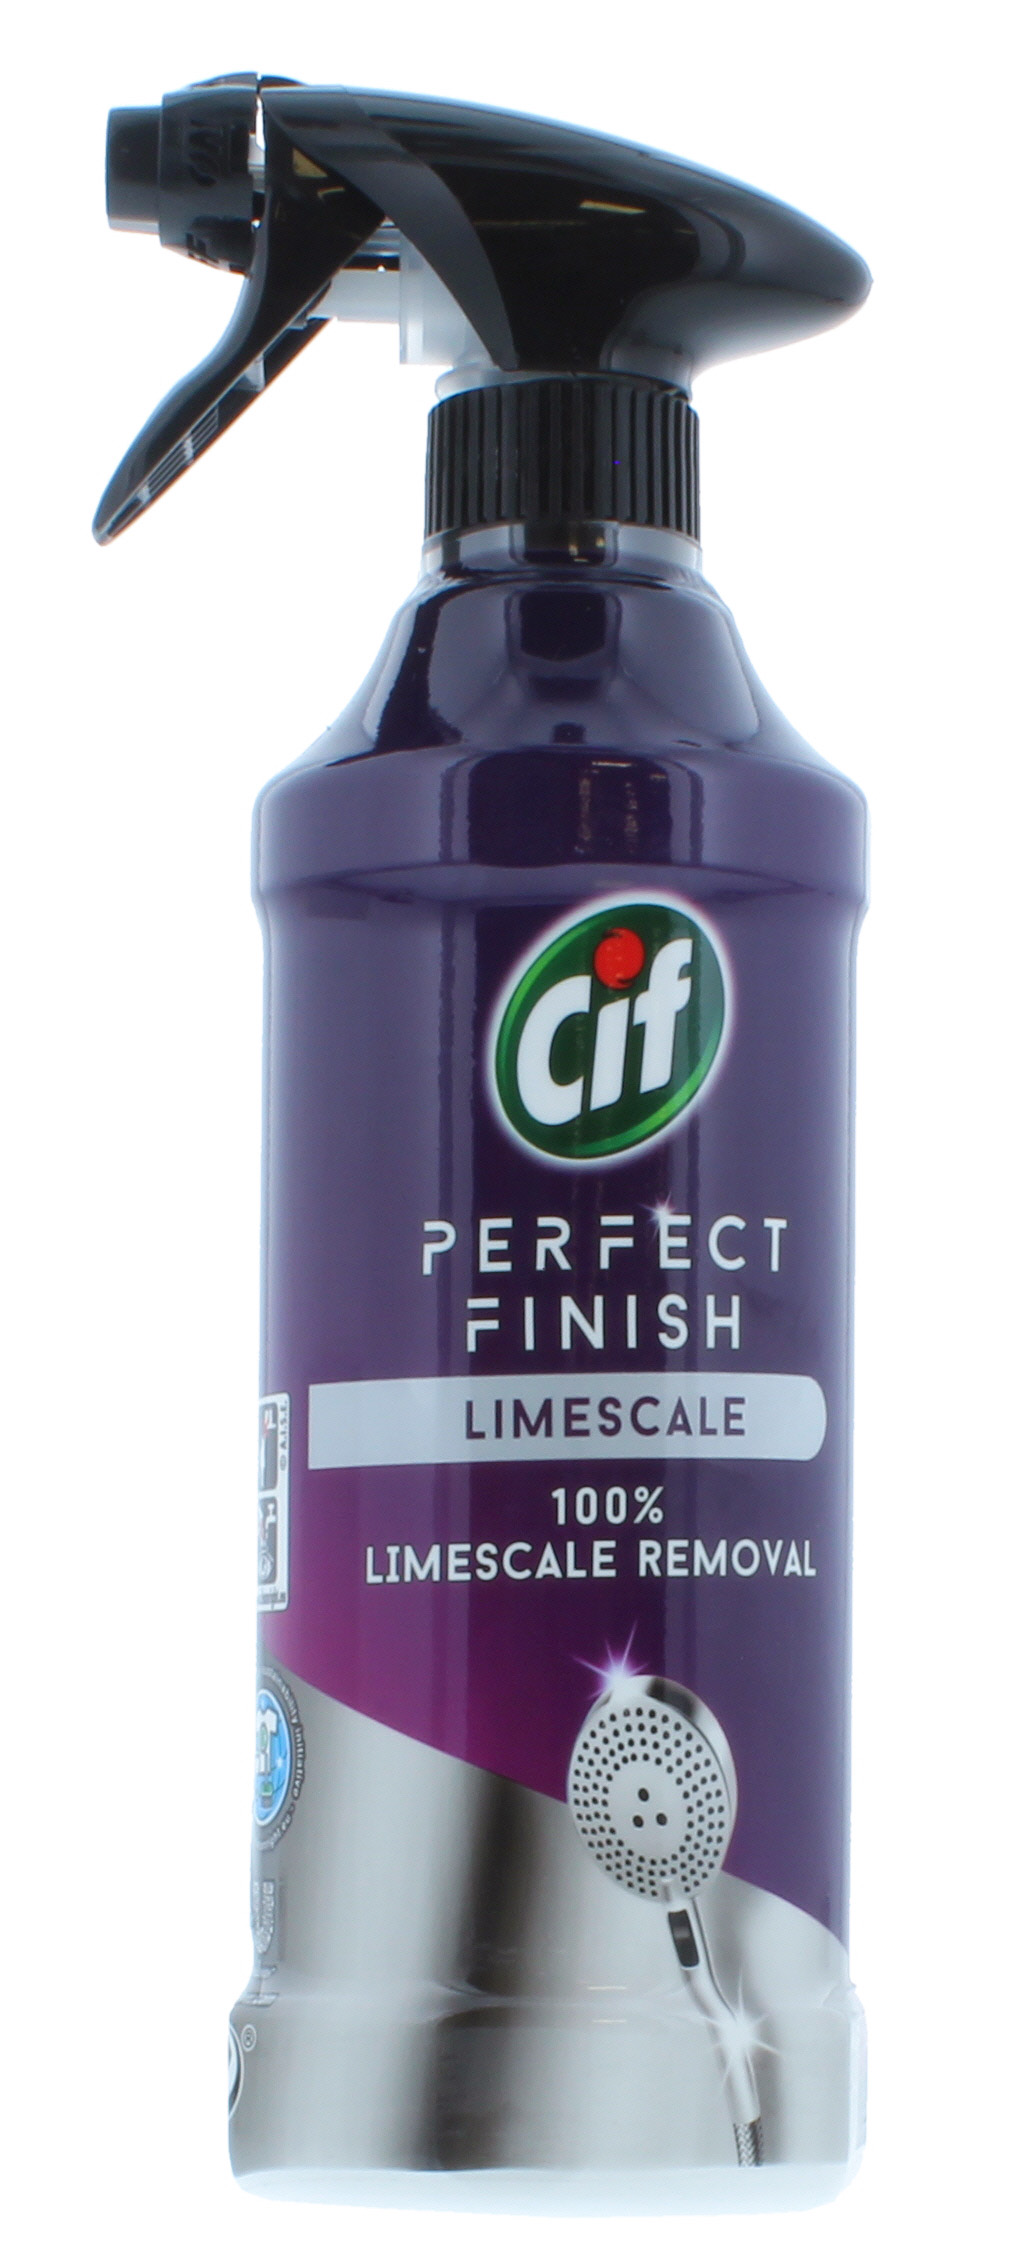 CIF 435ML LIMESCALE CLEANING SPRAY